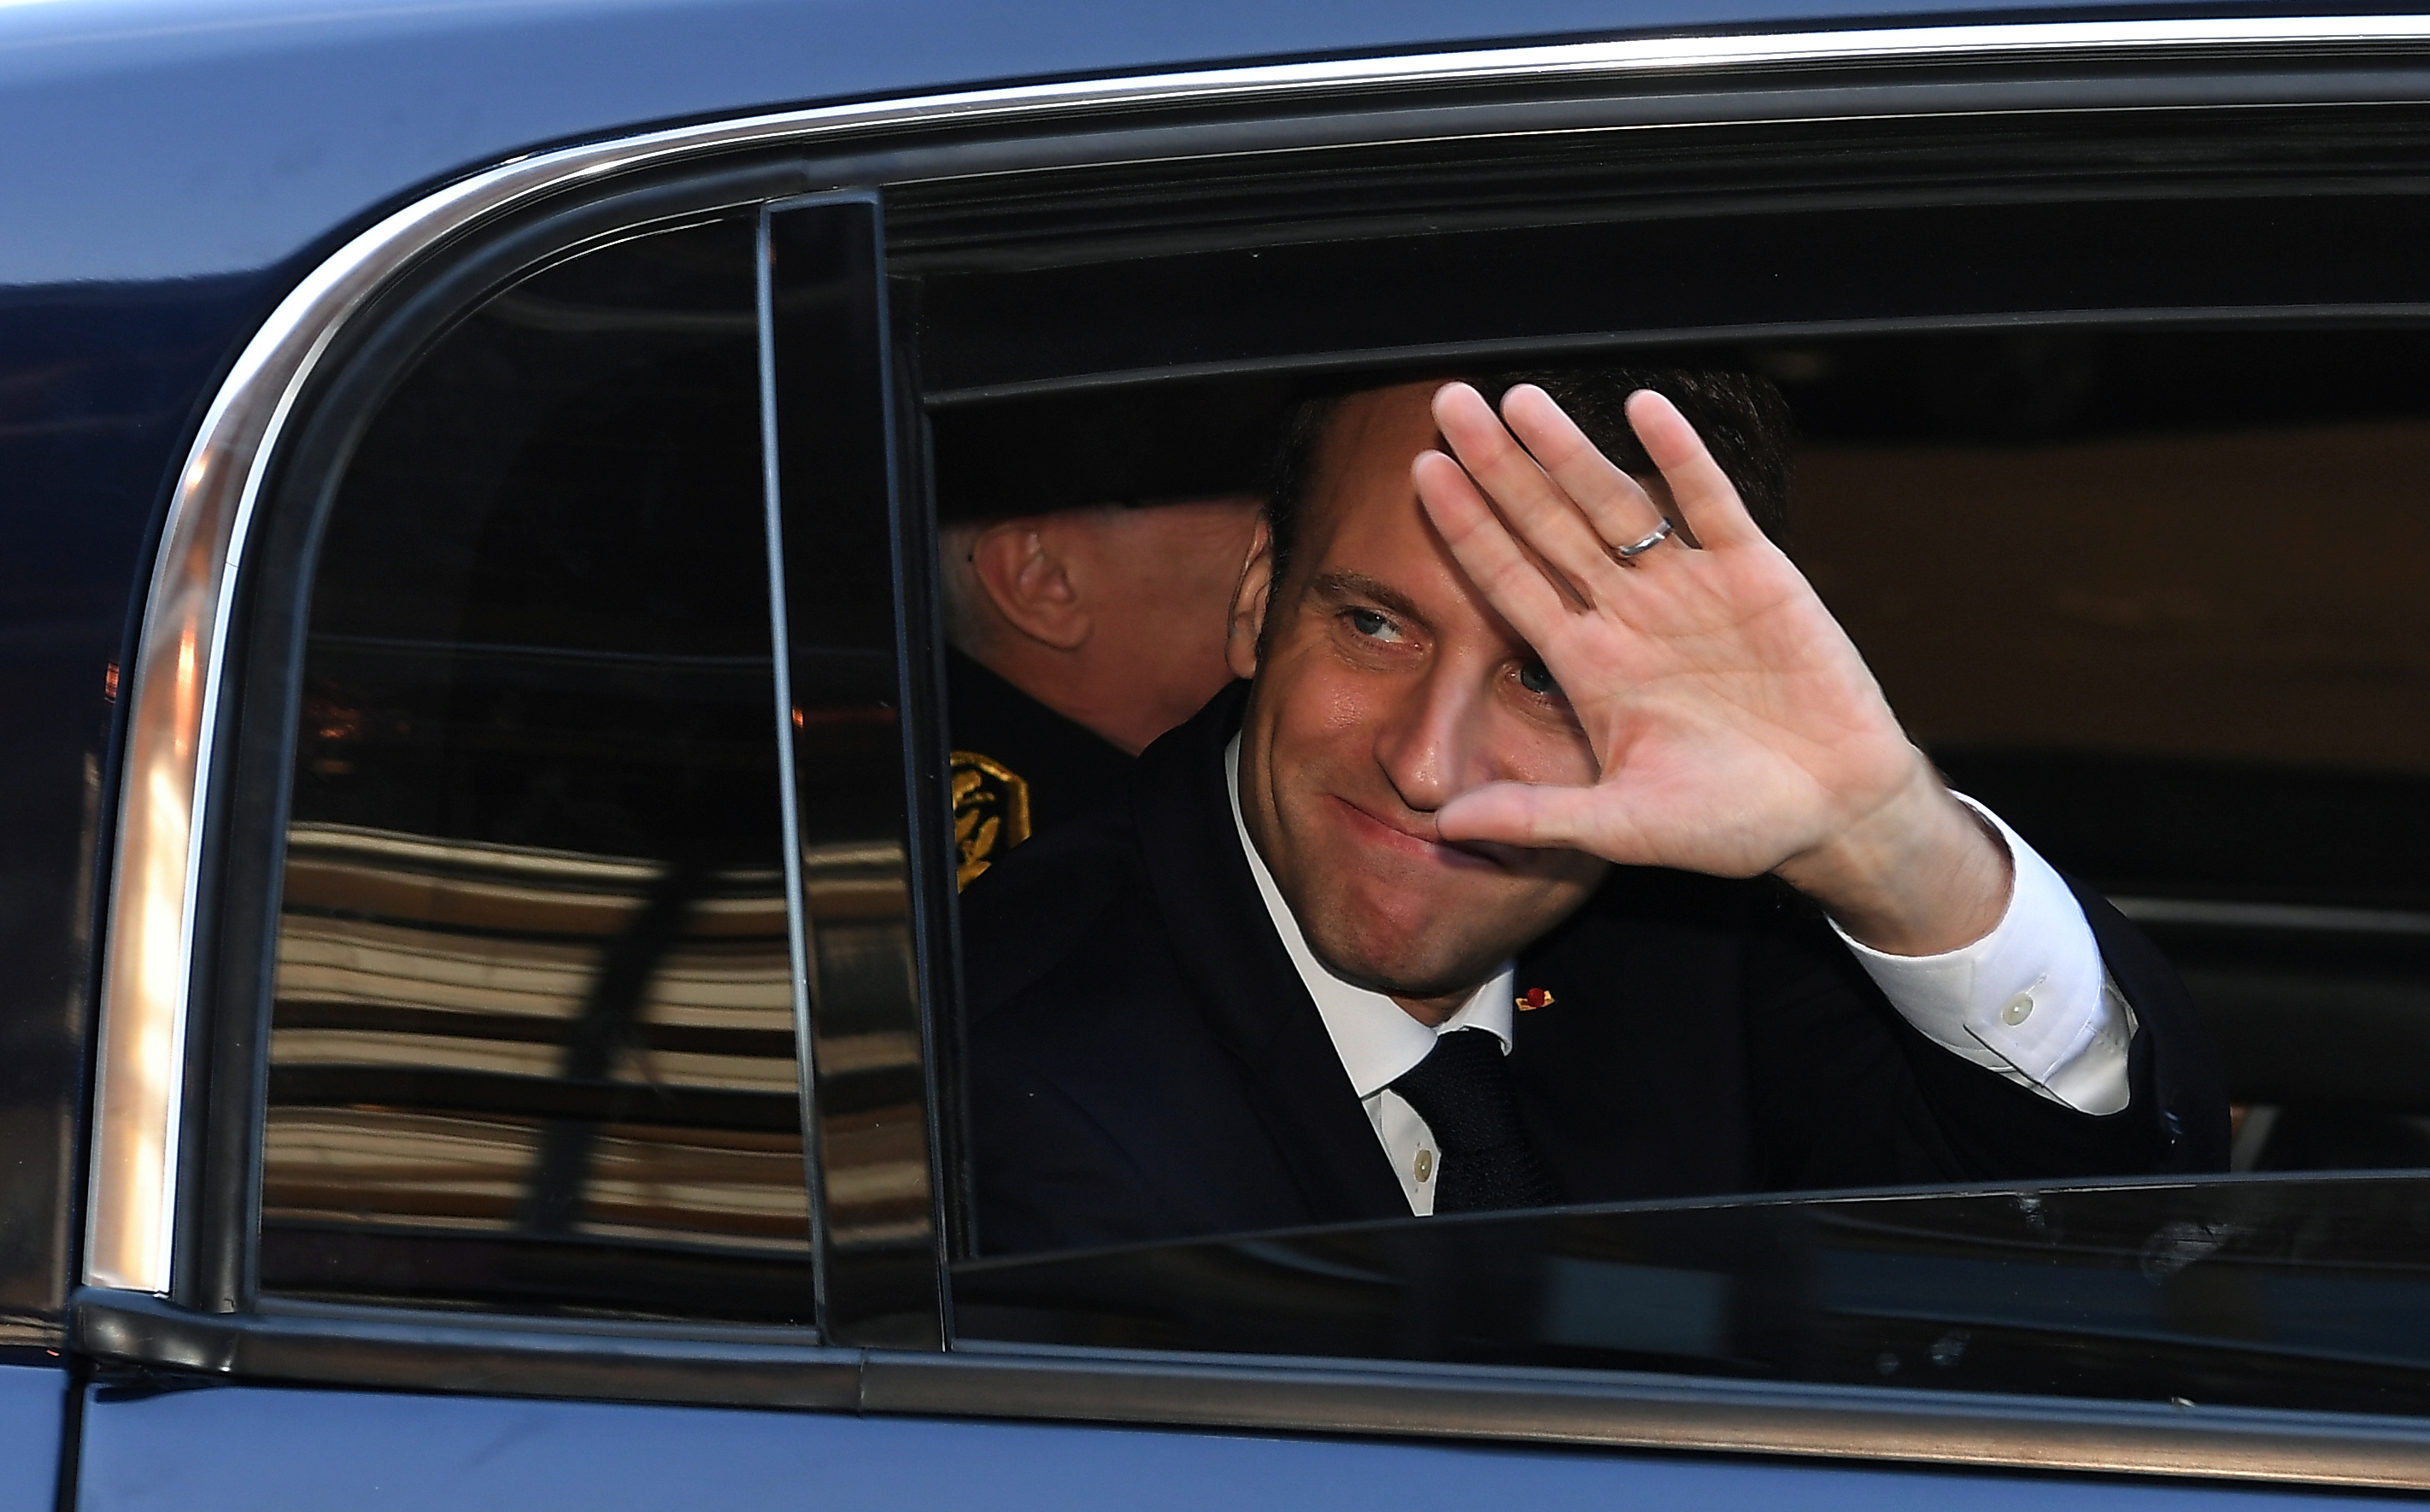 French President Emmanuel Macron waves from his car as he leaves after a visit about local and organic food supply in school canteens, at the secondary school Guy Dolmaire in Mirecourt, France, April 19, 2018. Patrick Hertzog/Pool via Reuters - RC148066A640